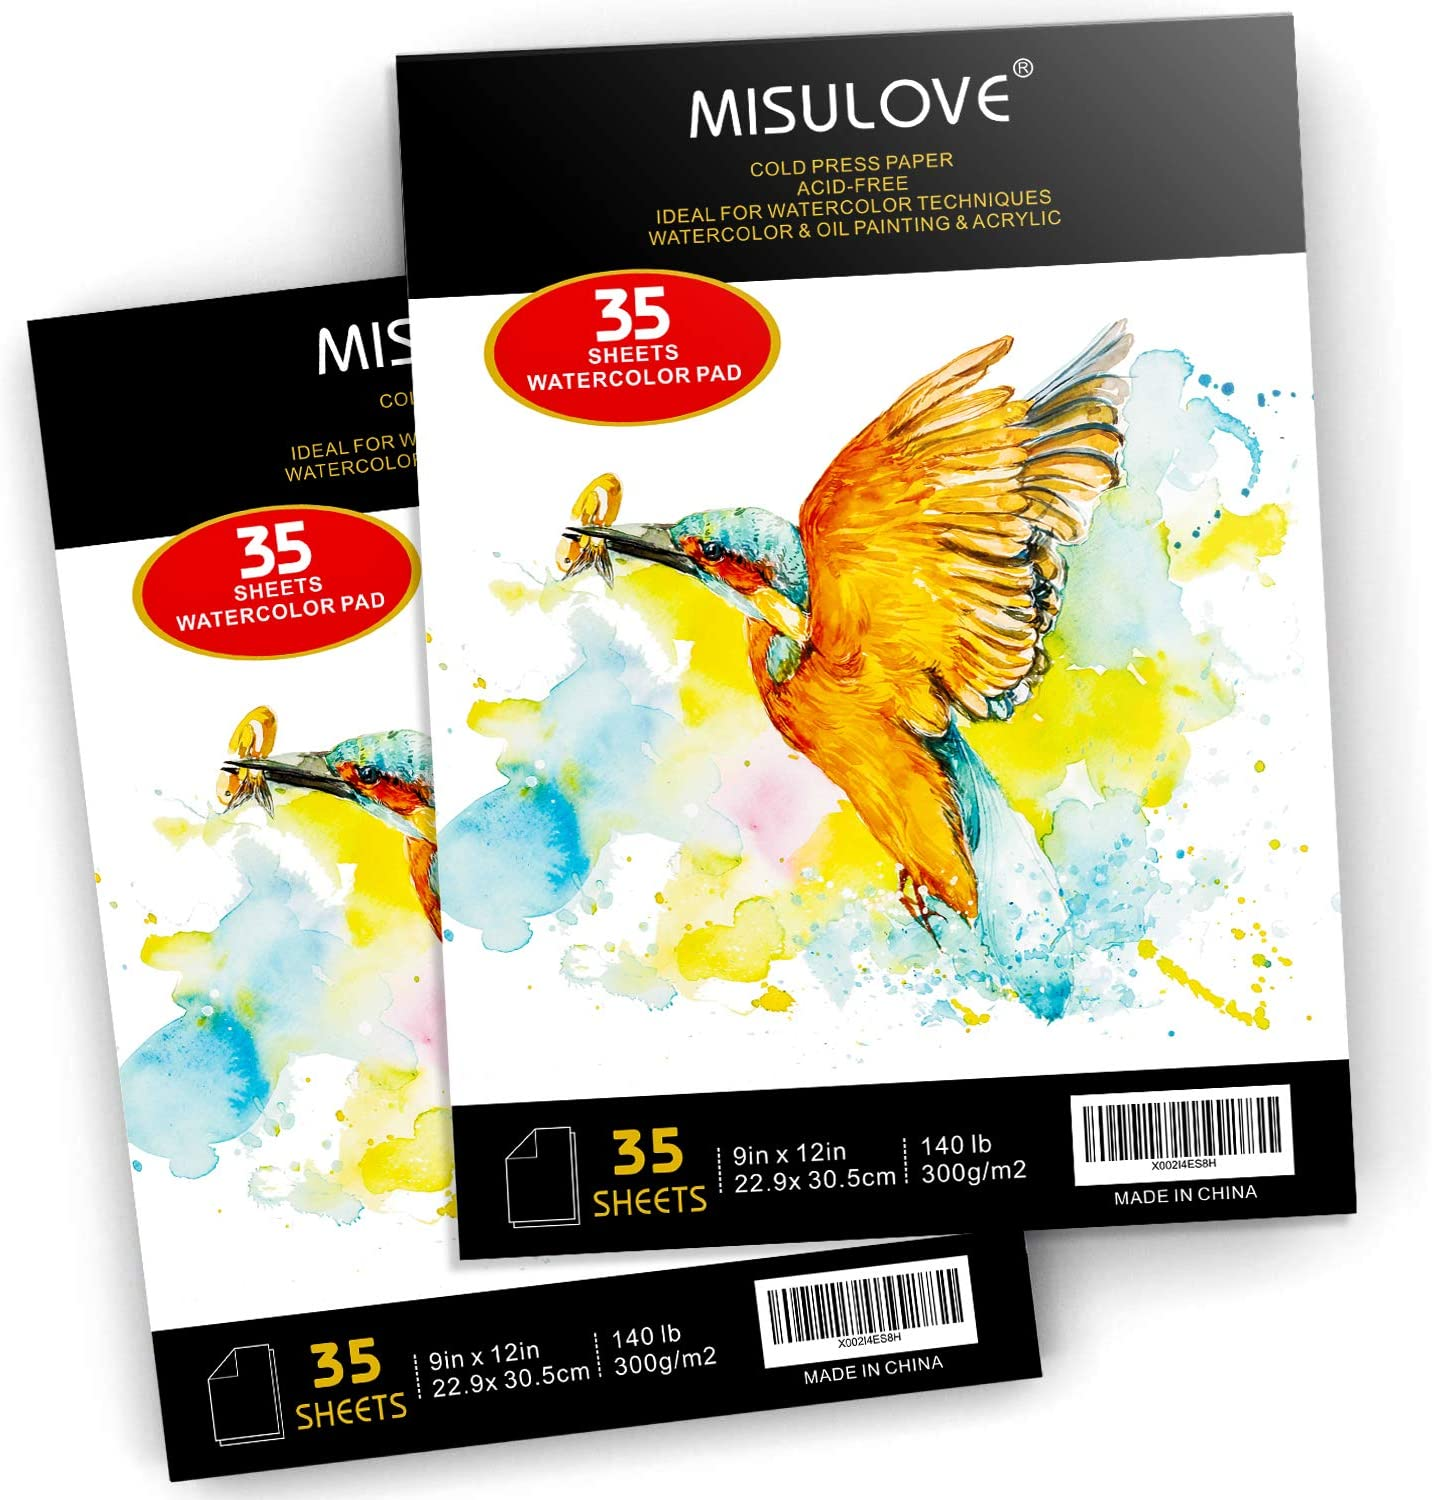 2 Pack Cold Pressed Acid Free Art Sketchbook Great for Watercolor Painting /& Drawing MISULOVE Watercolor Paper Pad 140lb//300gsm 70 Sheets 9 x 12 Mixed Media Textured Paper Wet